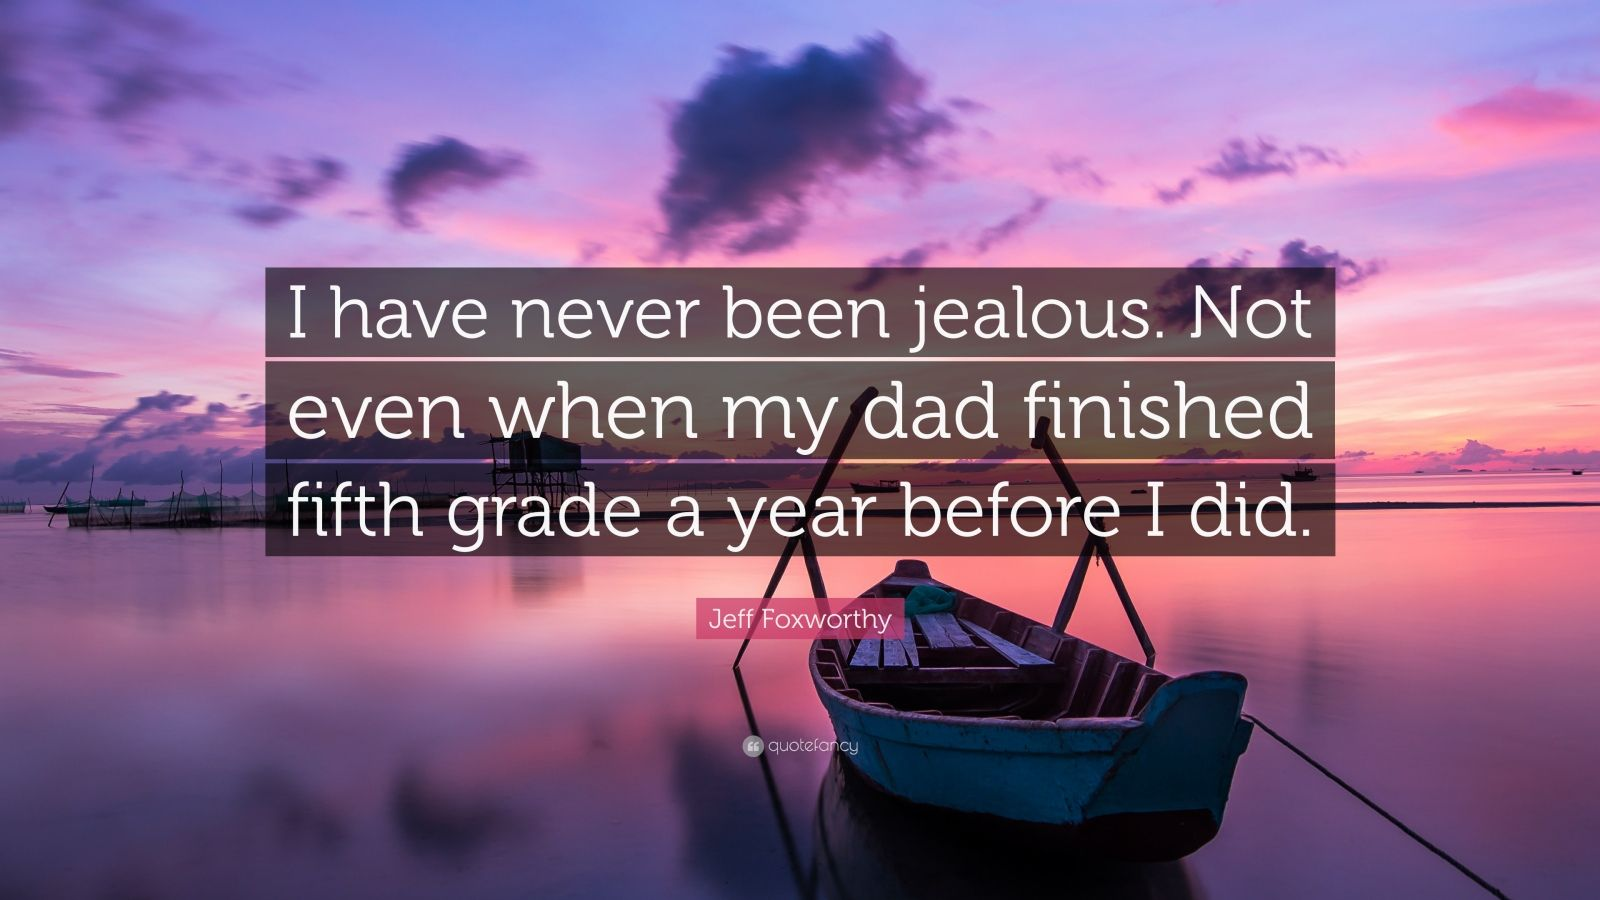 """Jeff Foxworthy Quote: """"I have never been jealous. Not even when my dad finished fifth grade a year before I did."""""""